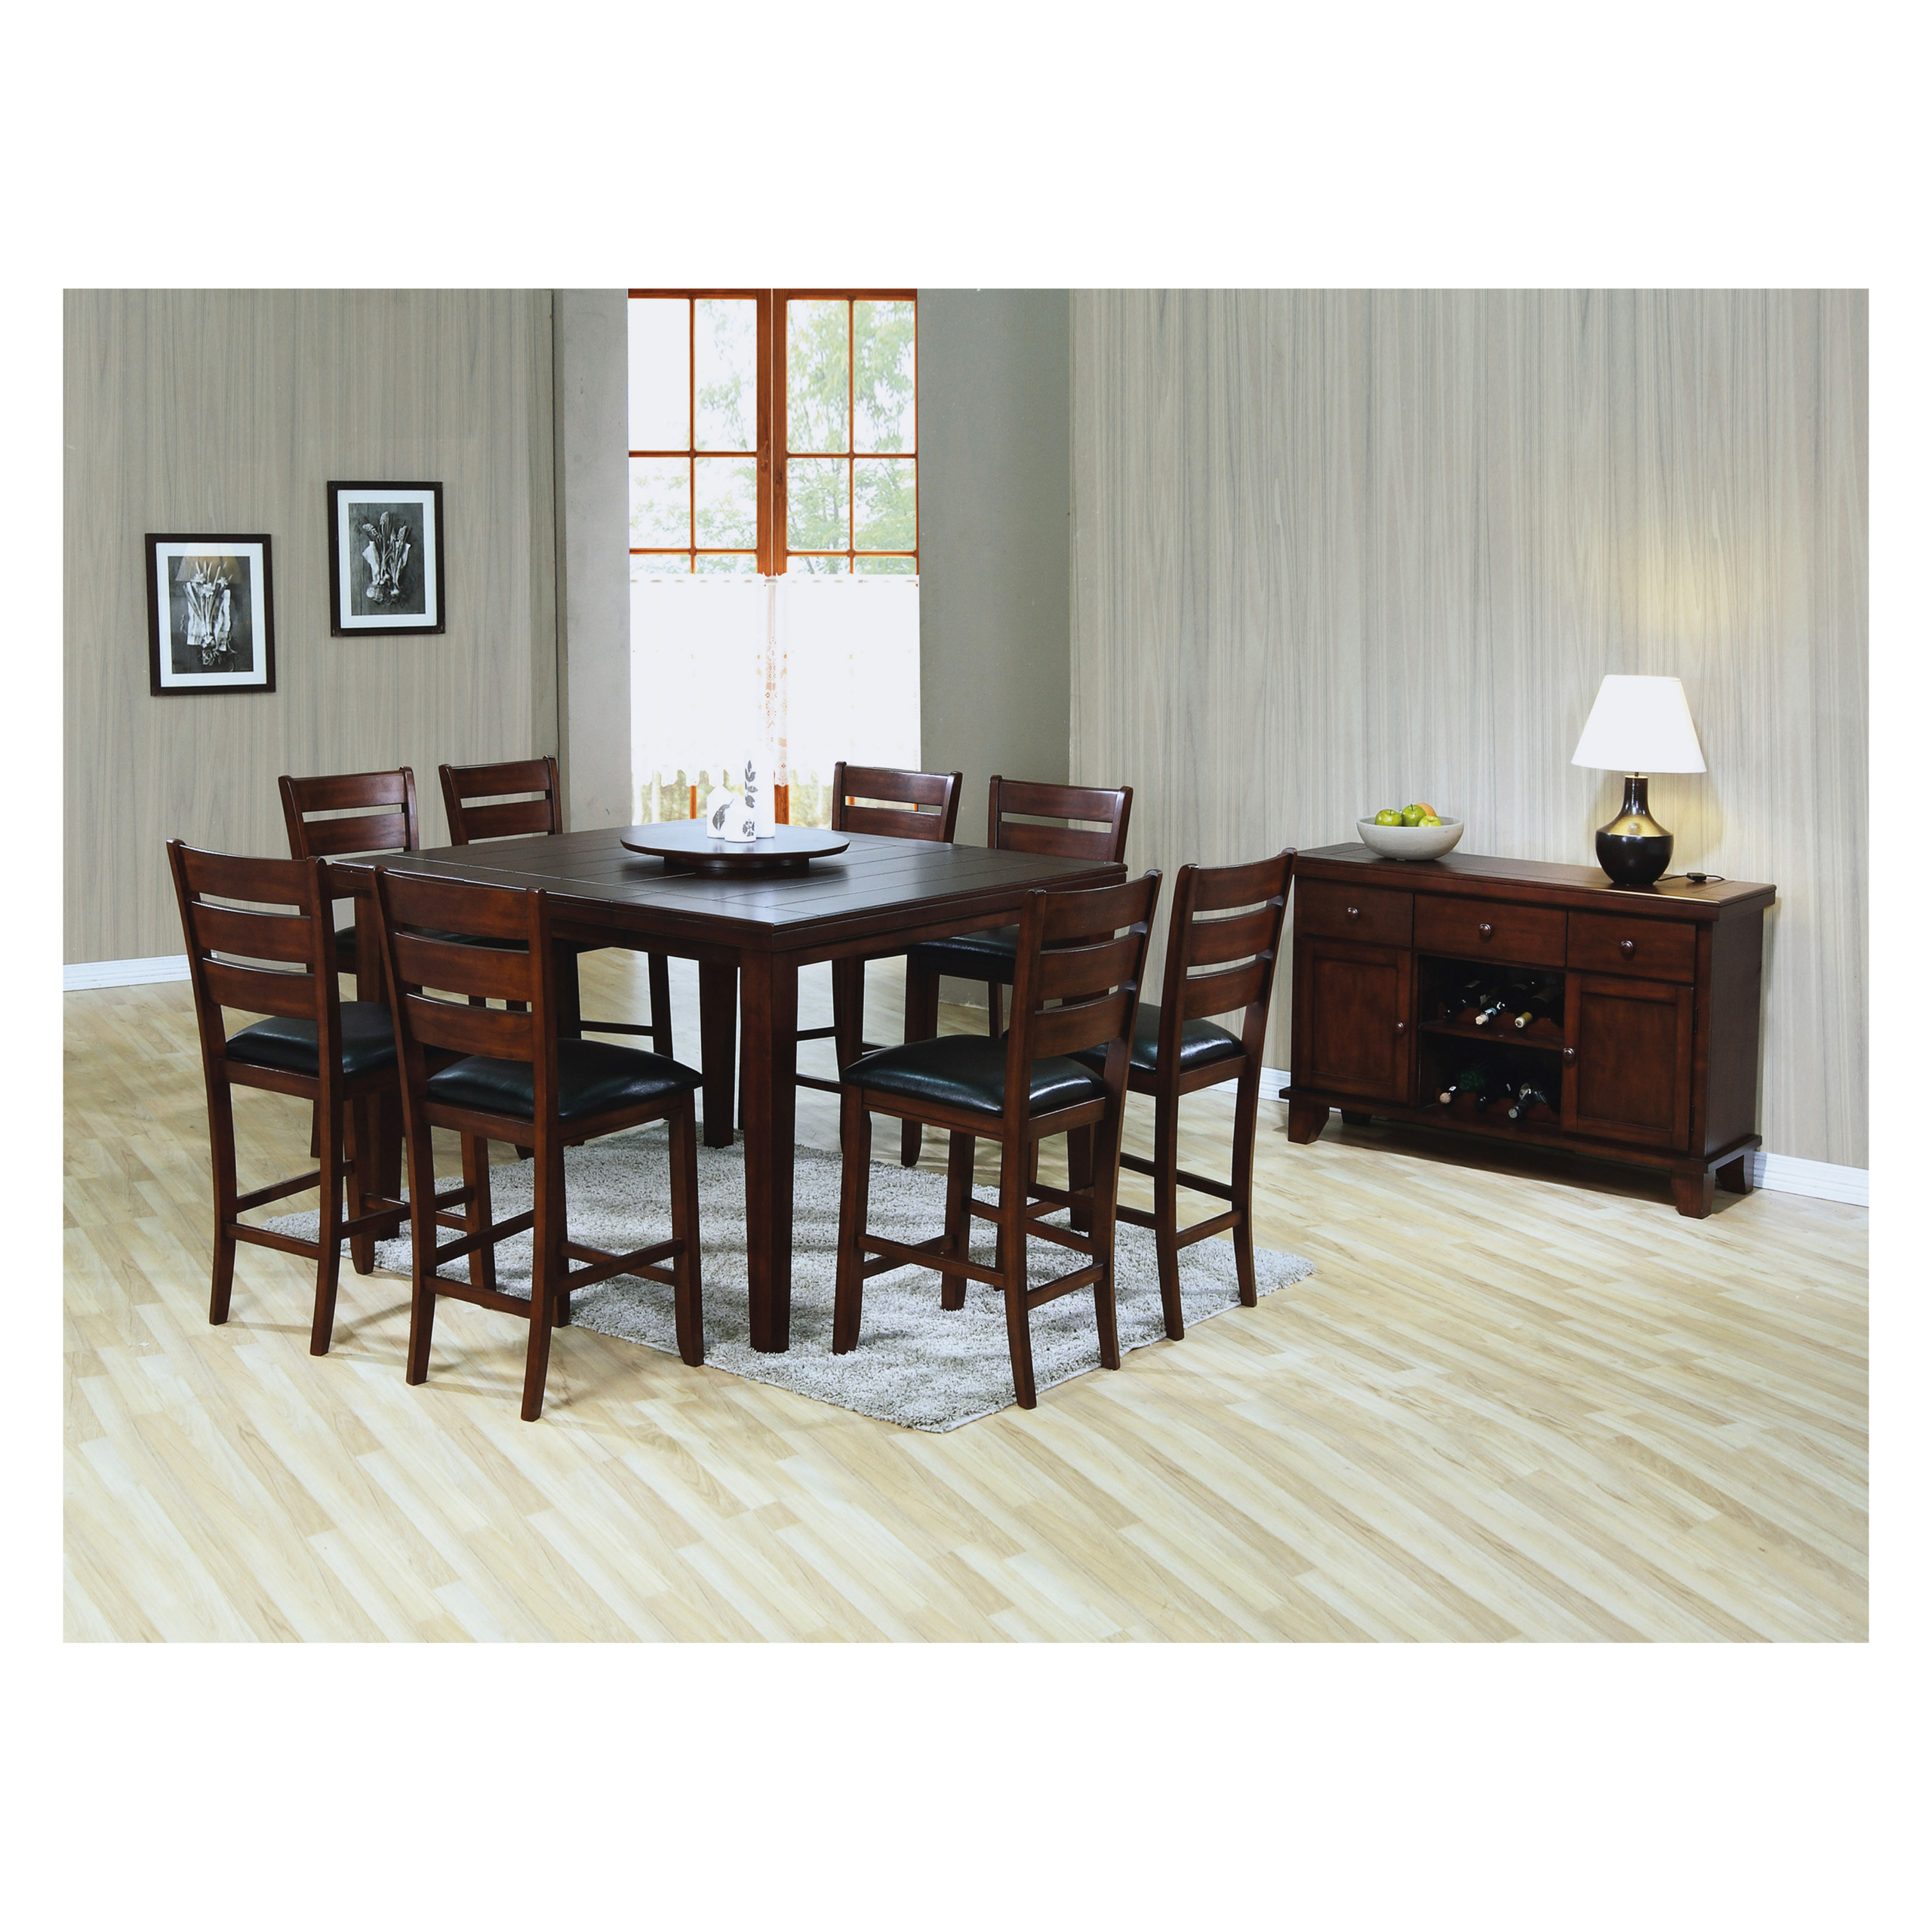 high top pub table and chairs ideas on foter rh foter com high pub tables and chairs high top tables and chairs